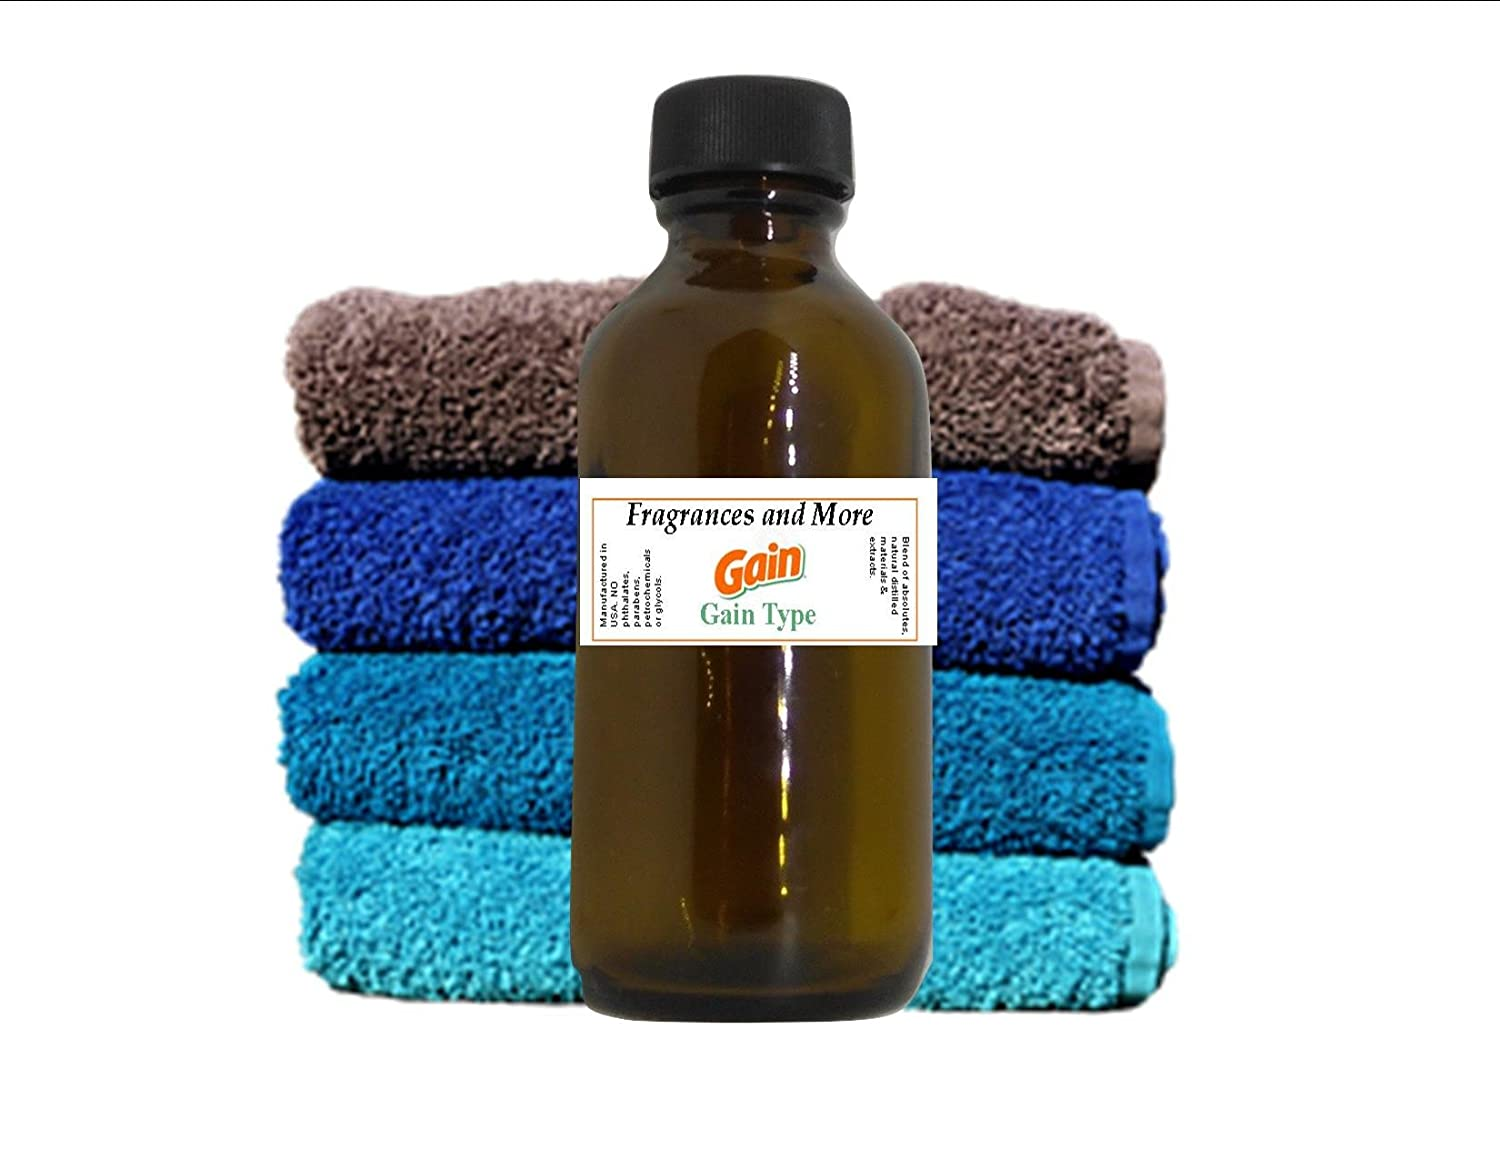 GAIN FRAGRANCE OIL | For Soap Making| Candle Making| For Use with Diffusers| Add to Bath & Body Products| Home and Office Scents| 2 oz amber glass bottle